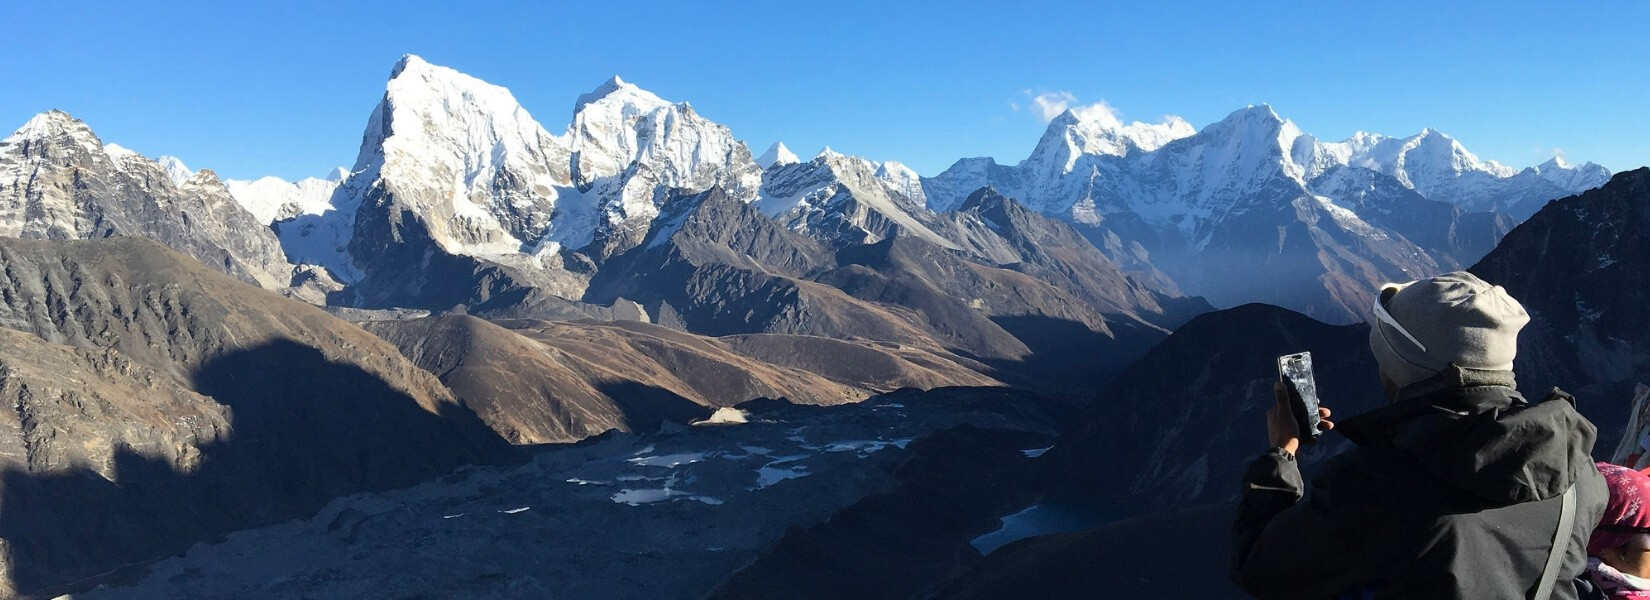 How much does it cost to trek Everest Base Camp?